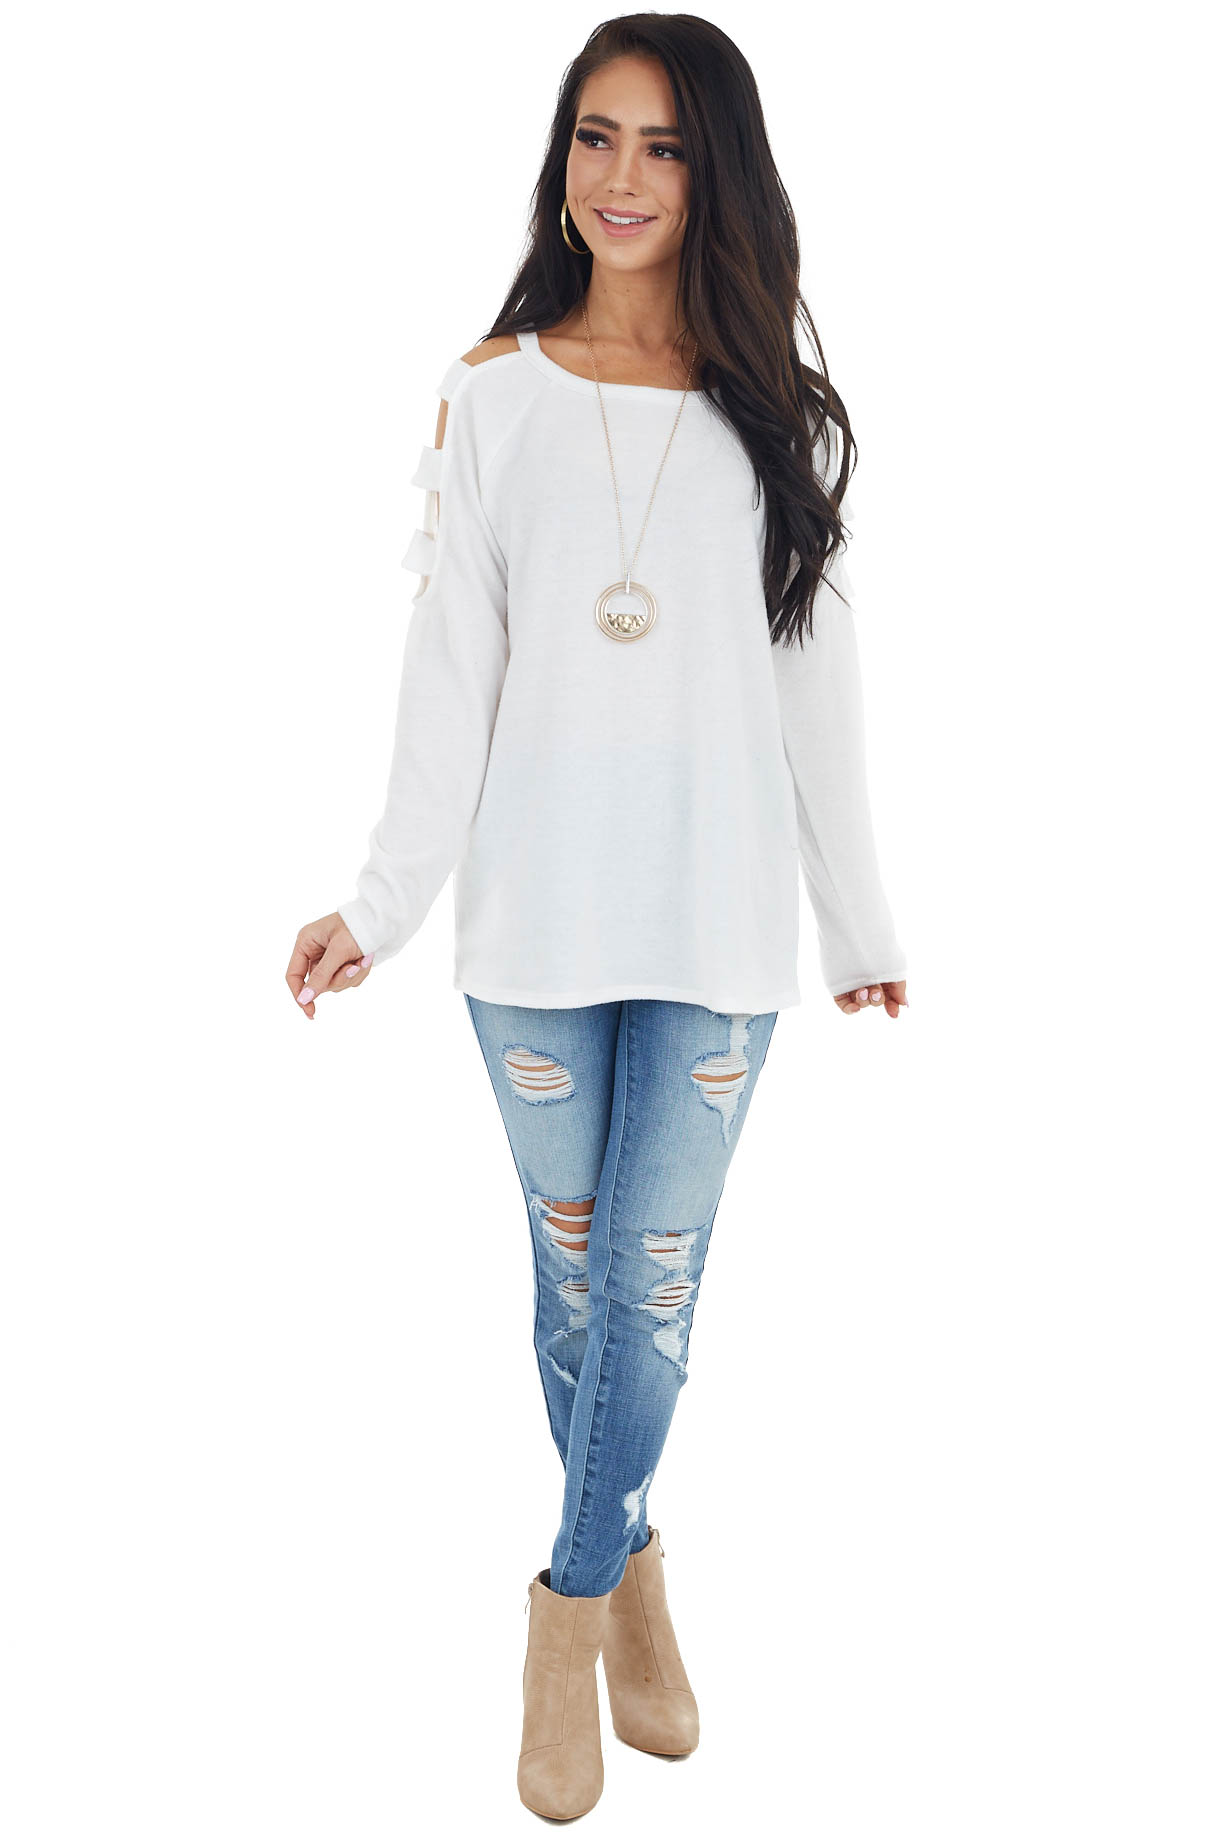 Ivory Long Sleeve Soft Knit Top with Ladder Details